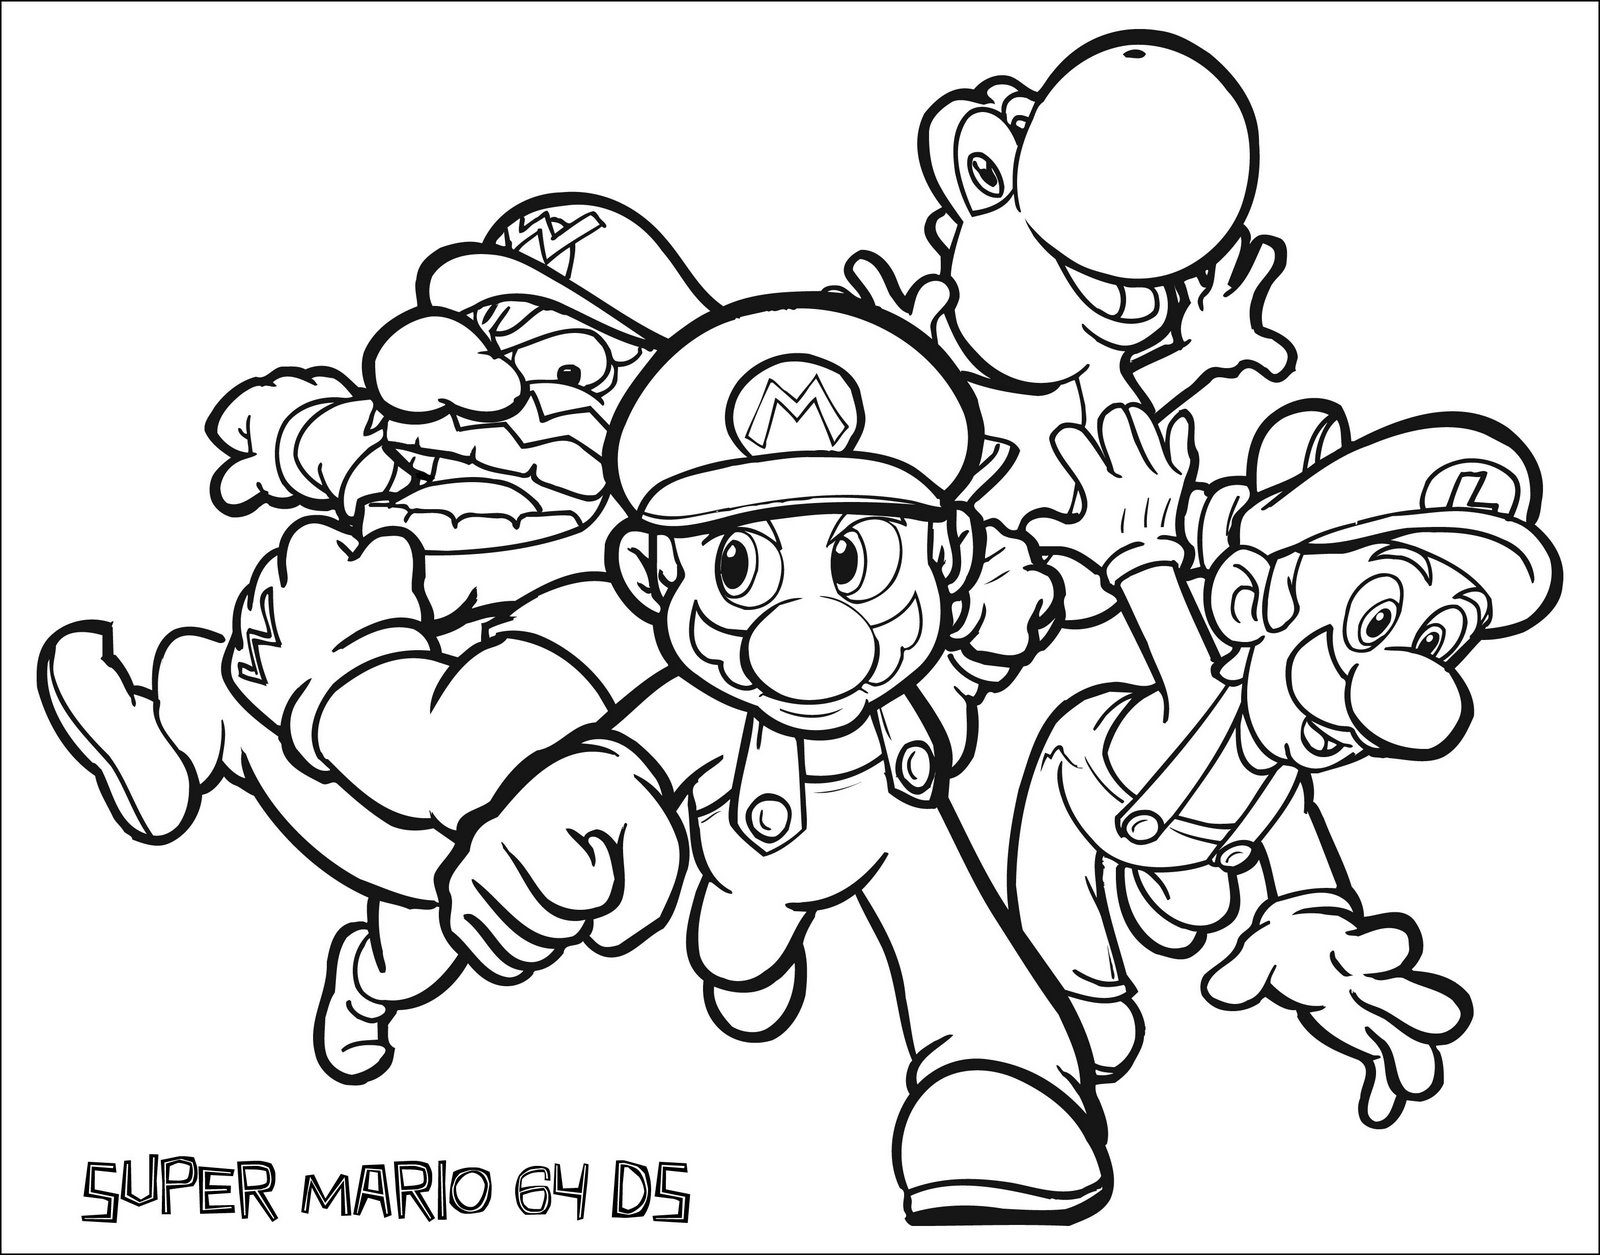 nintendo characters coloring pages nintendo coloring pages at getdrawings free download characters nintendo coloring pages